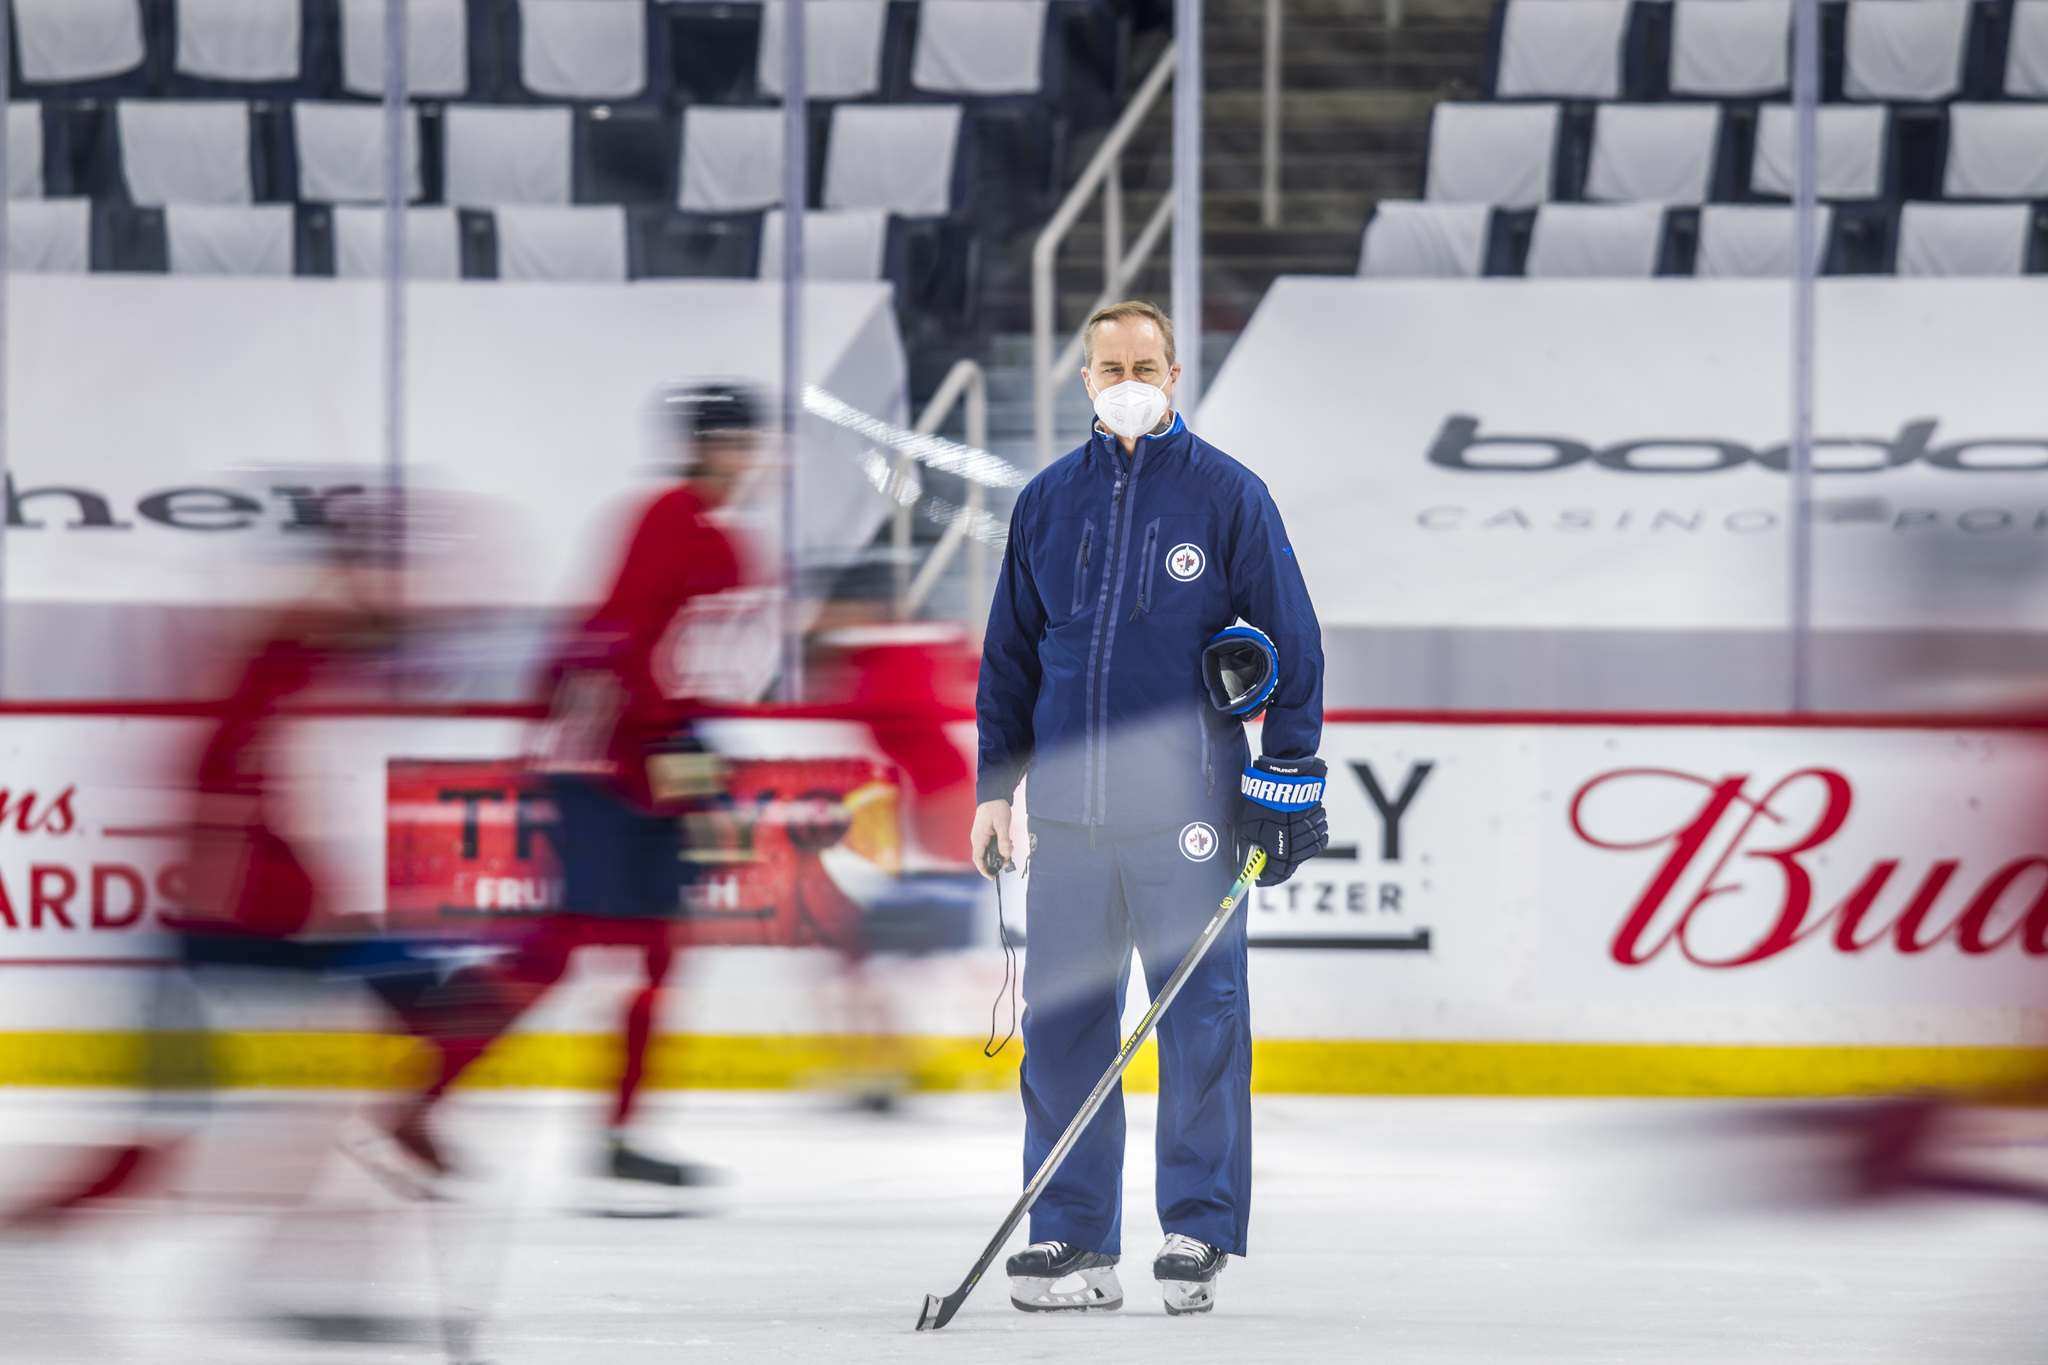 MIKAELA MACKENZIE / WINNIPEG FREE PRESS FILES</p> The painful annual exercise happens Wednesday at Bell MTS Place, where Winnipeg Jets coach Paul Maurice will sit down, one at a time, with his grim-faced players and talk about some uncomfortable truths.